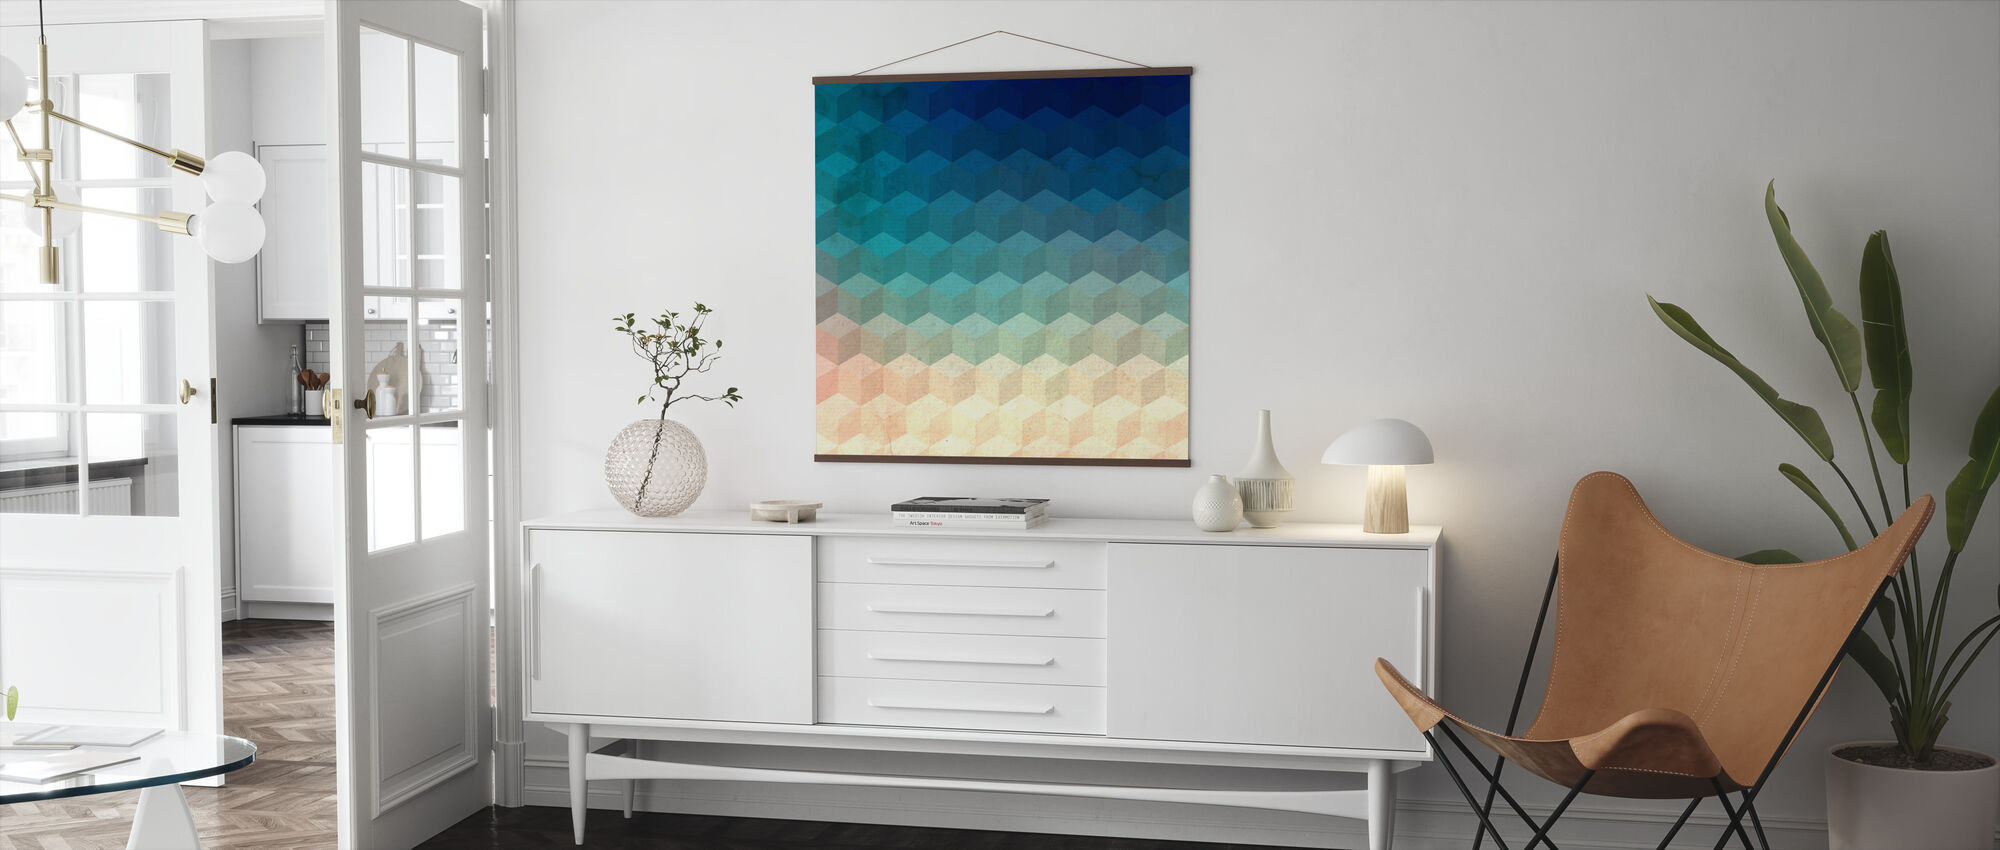 Hexagon Cubes - Poster - Living Room